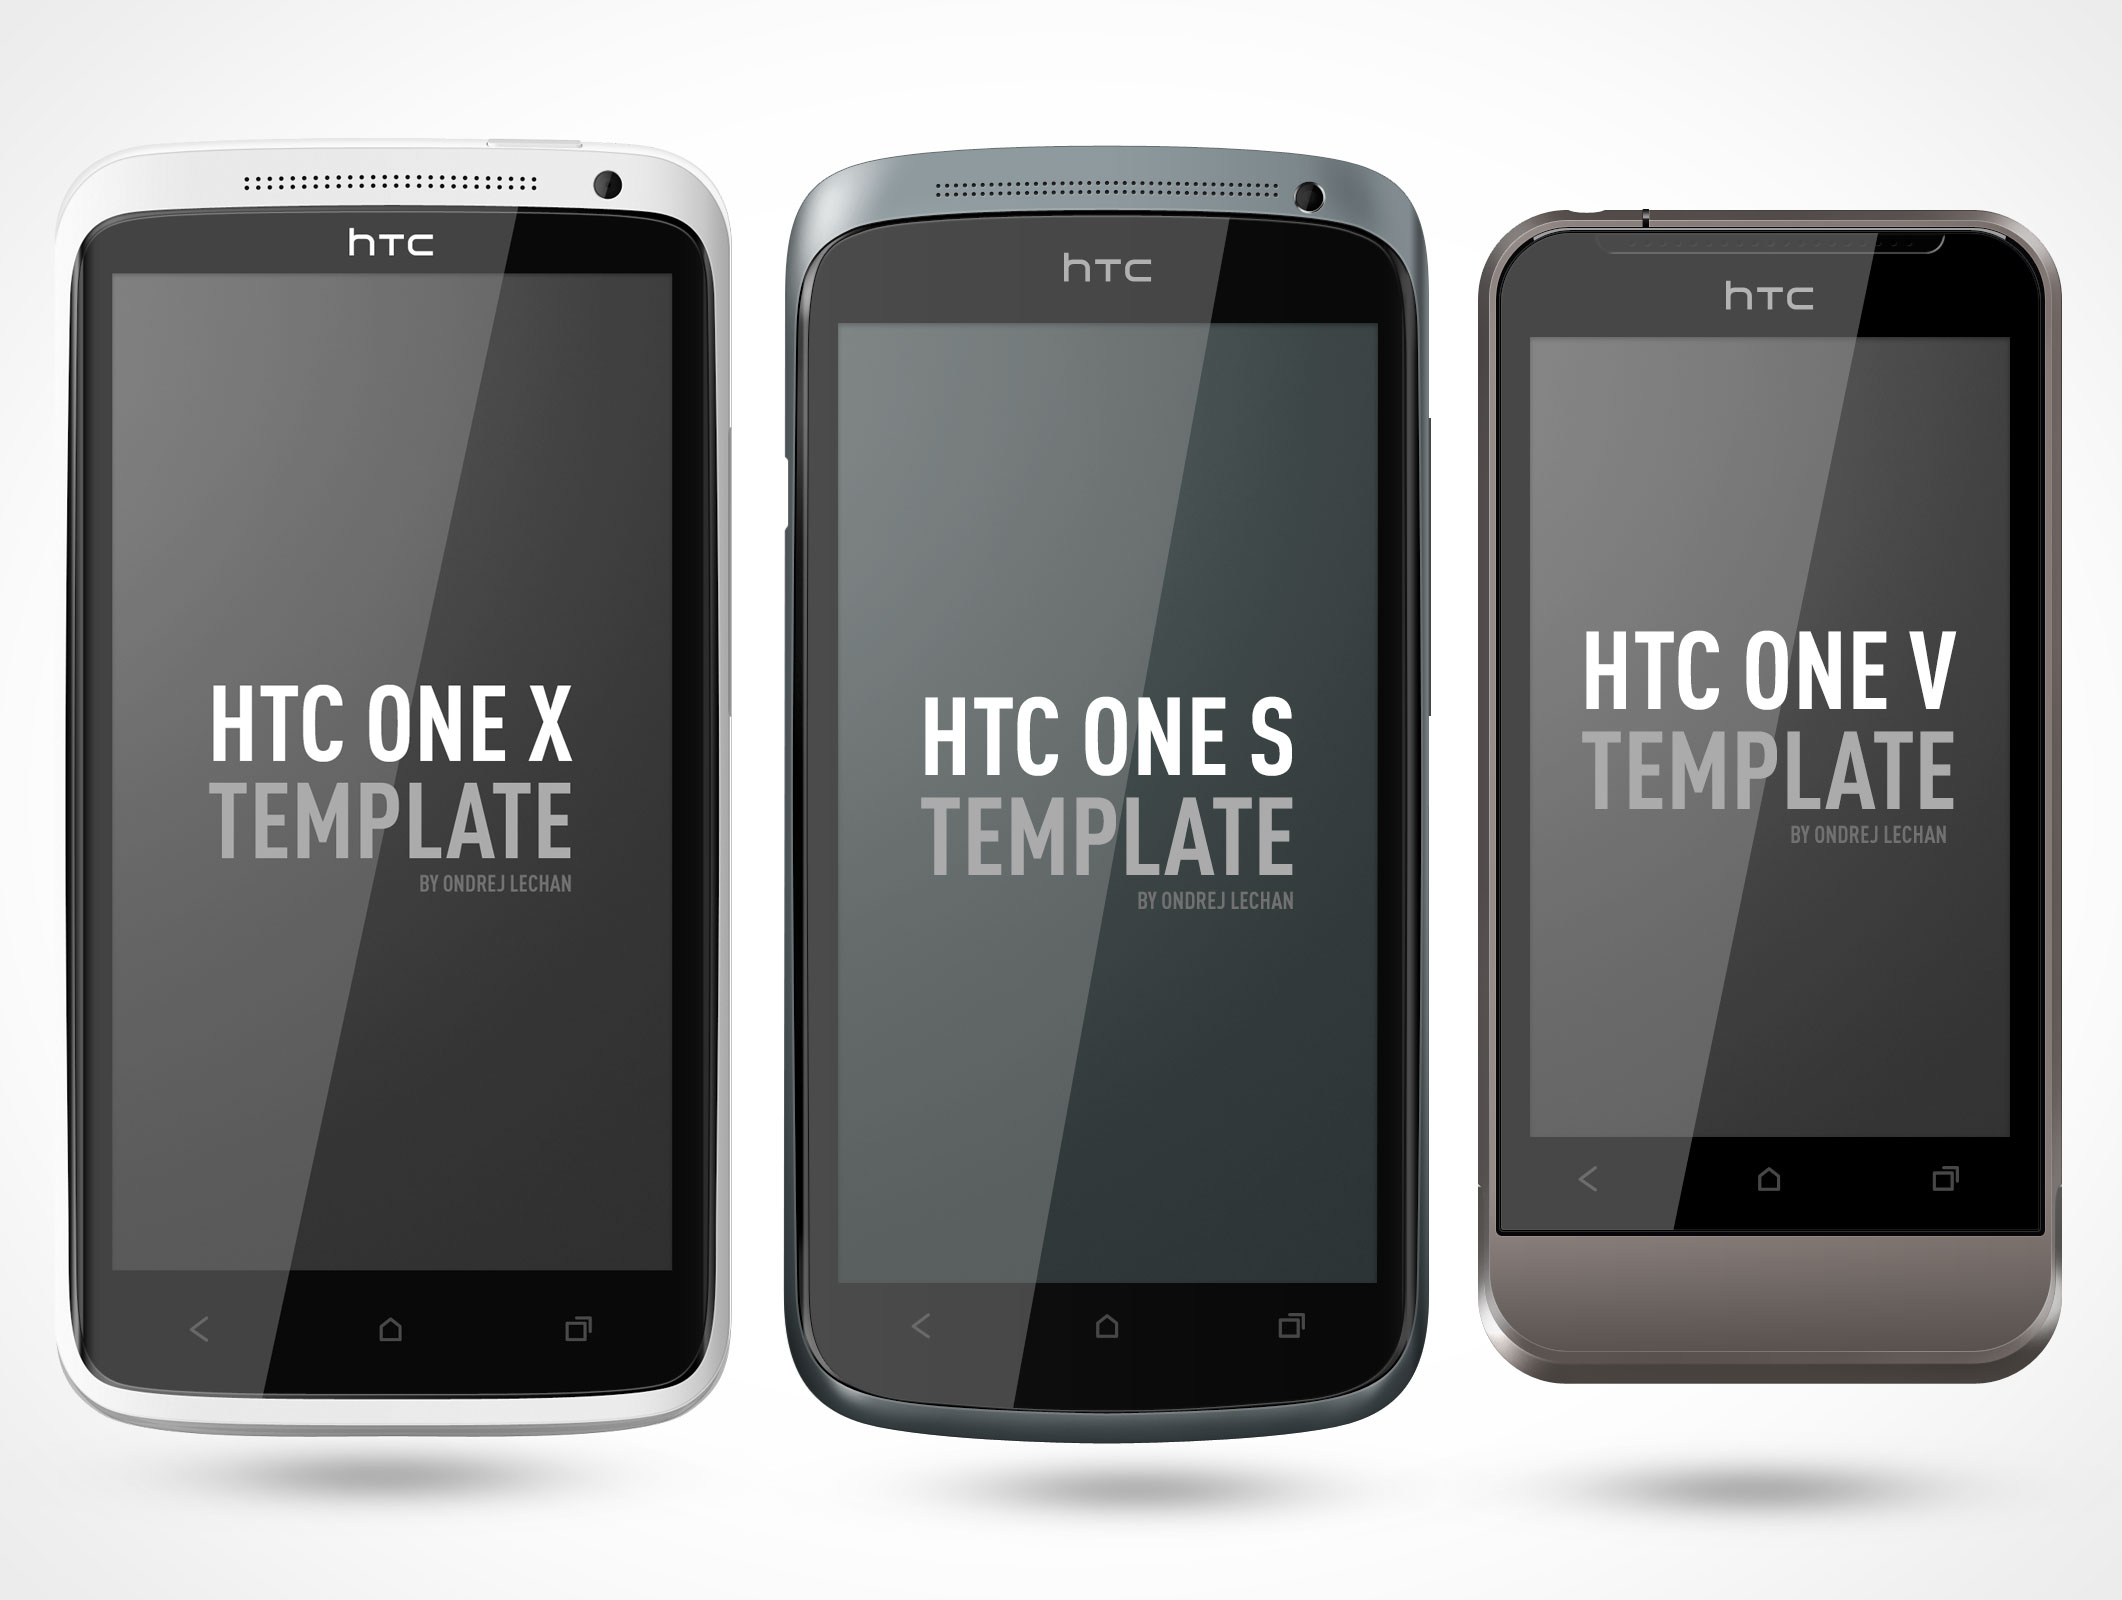 Htc One Android Smartphone Mockup